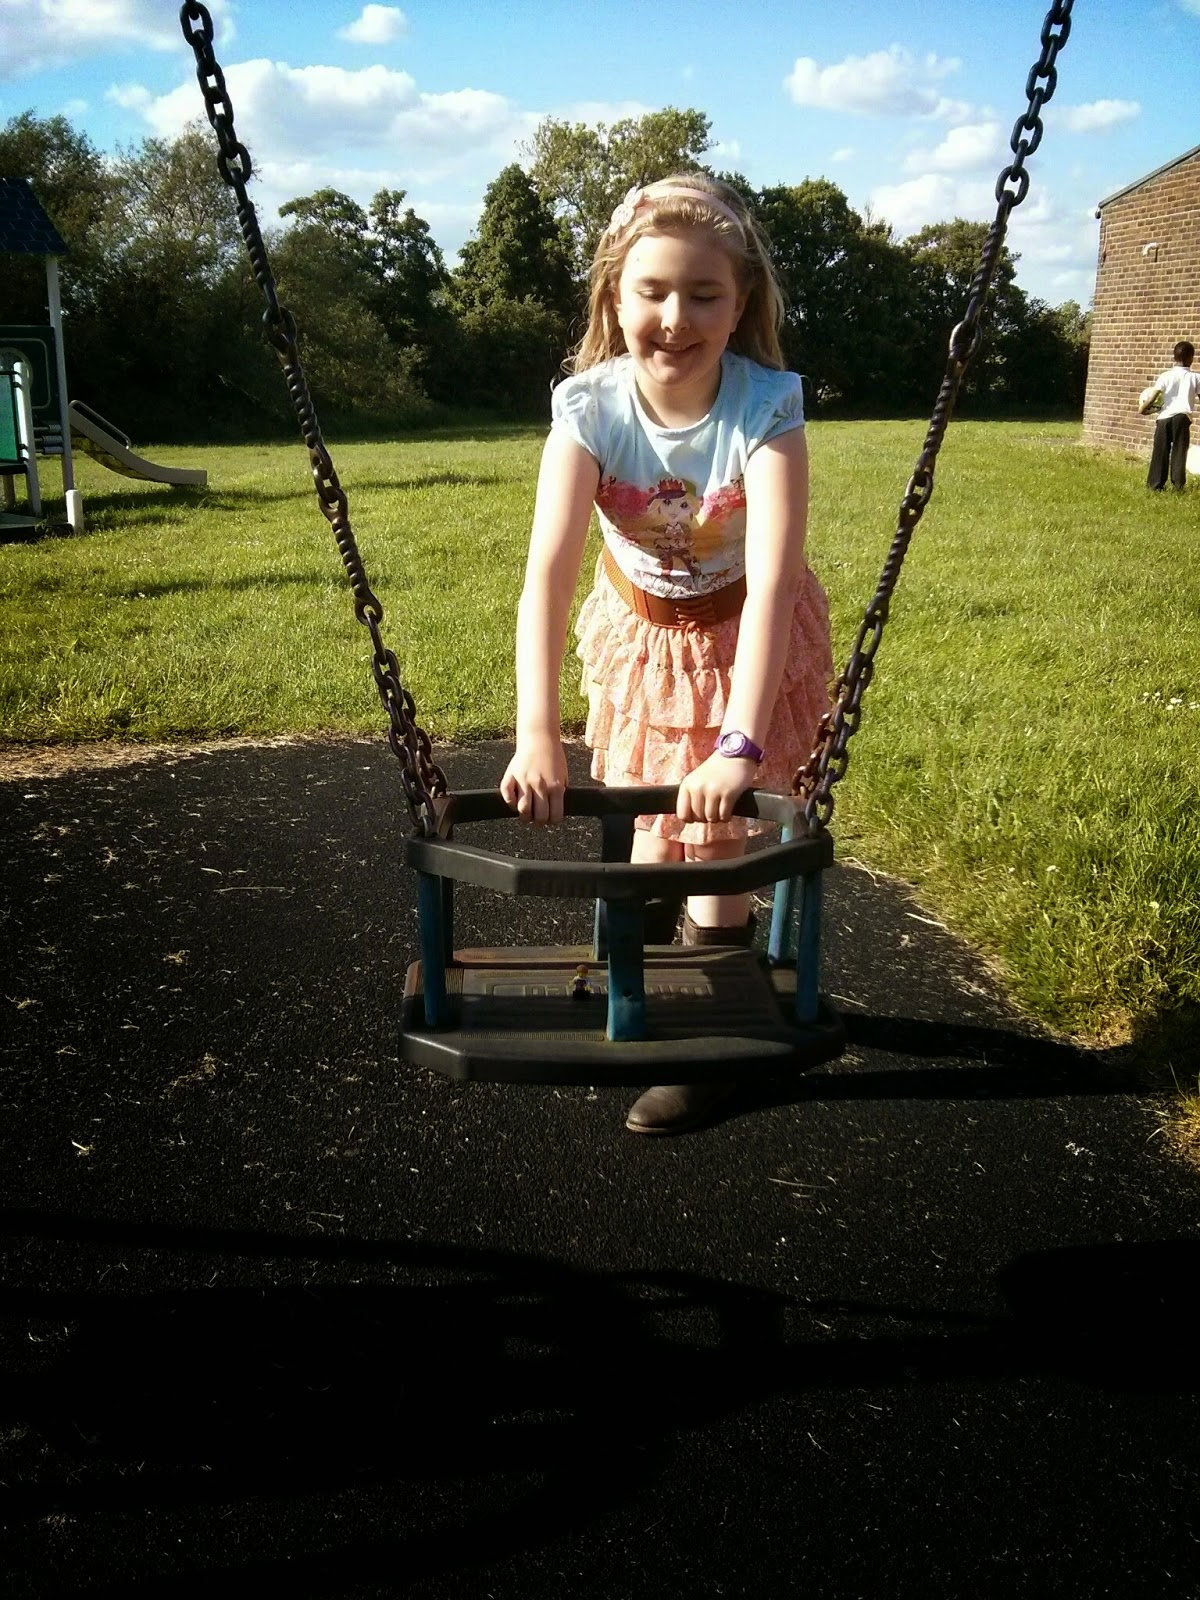 Being pushed on the Swing